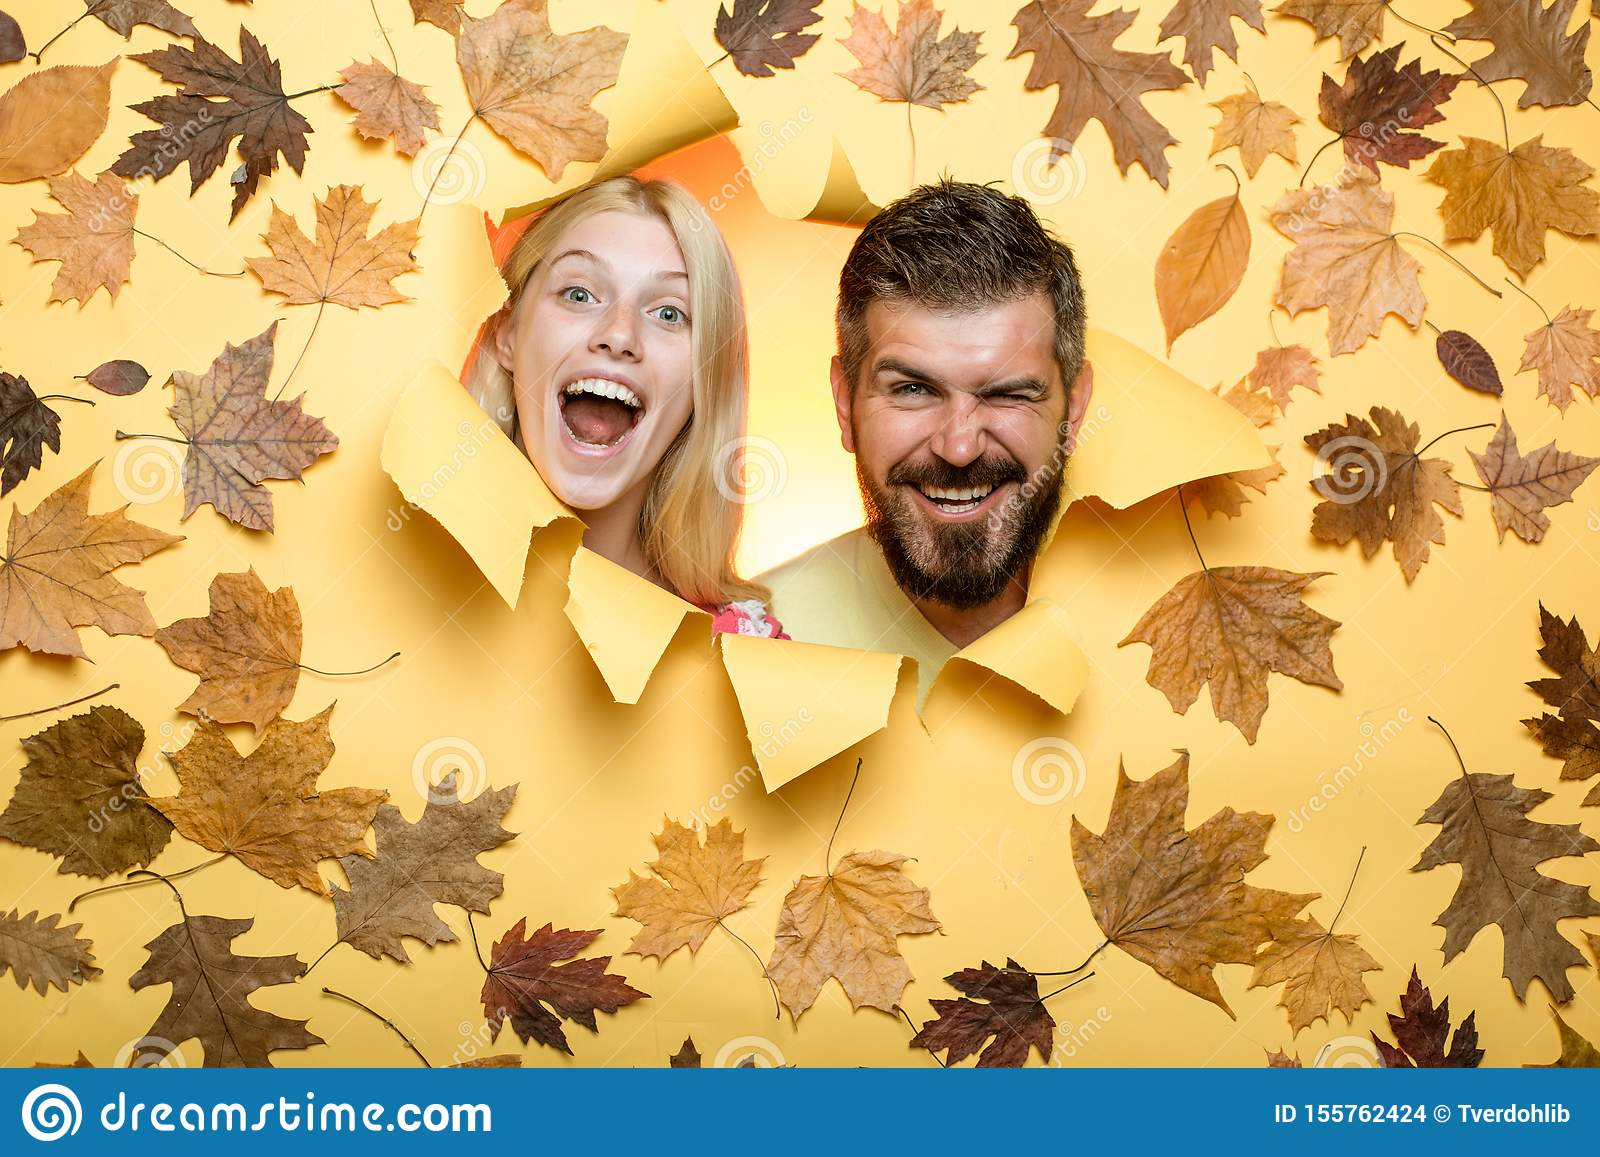 Funny couple getting ready for autumn sale. Joyful couple is happy with last warm days of autumn. Surprised couple on